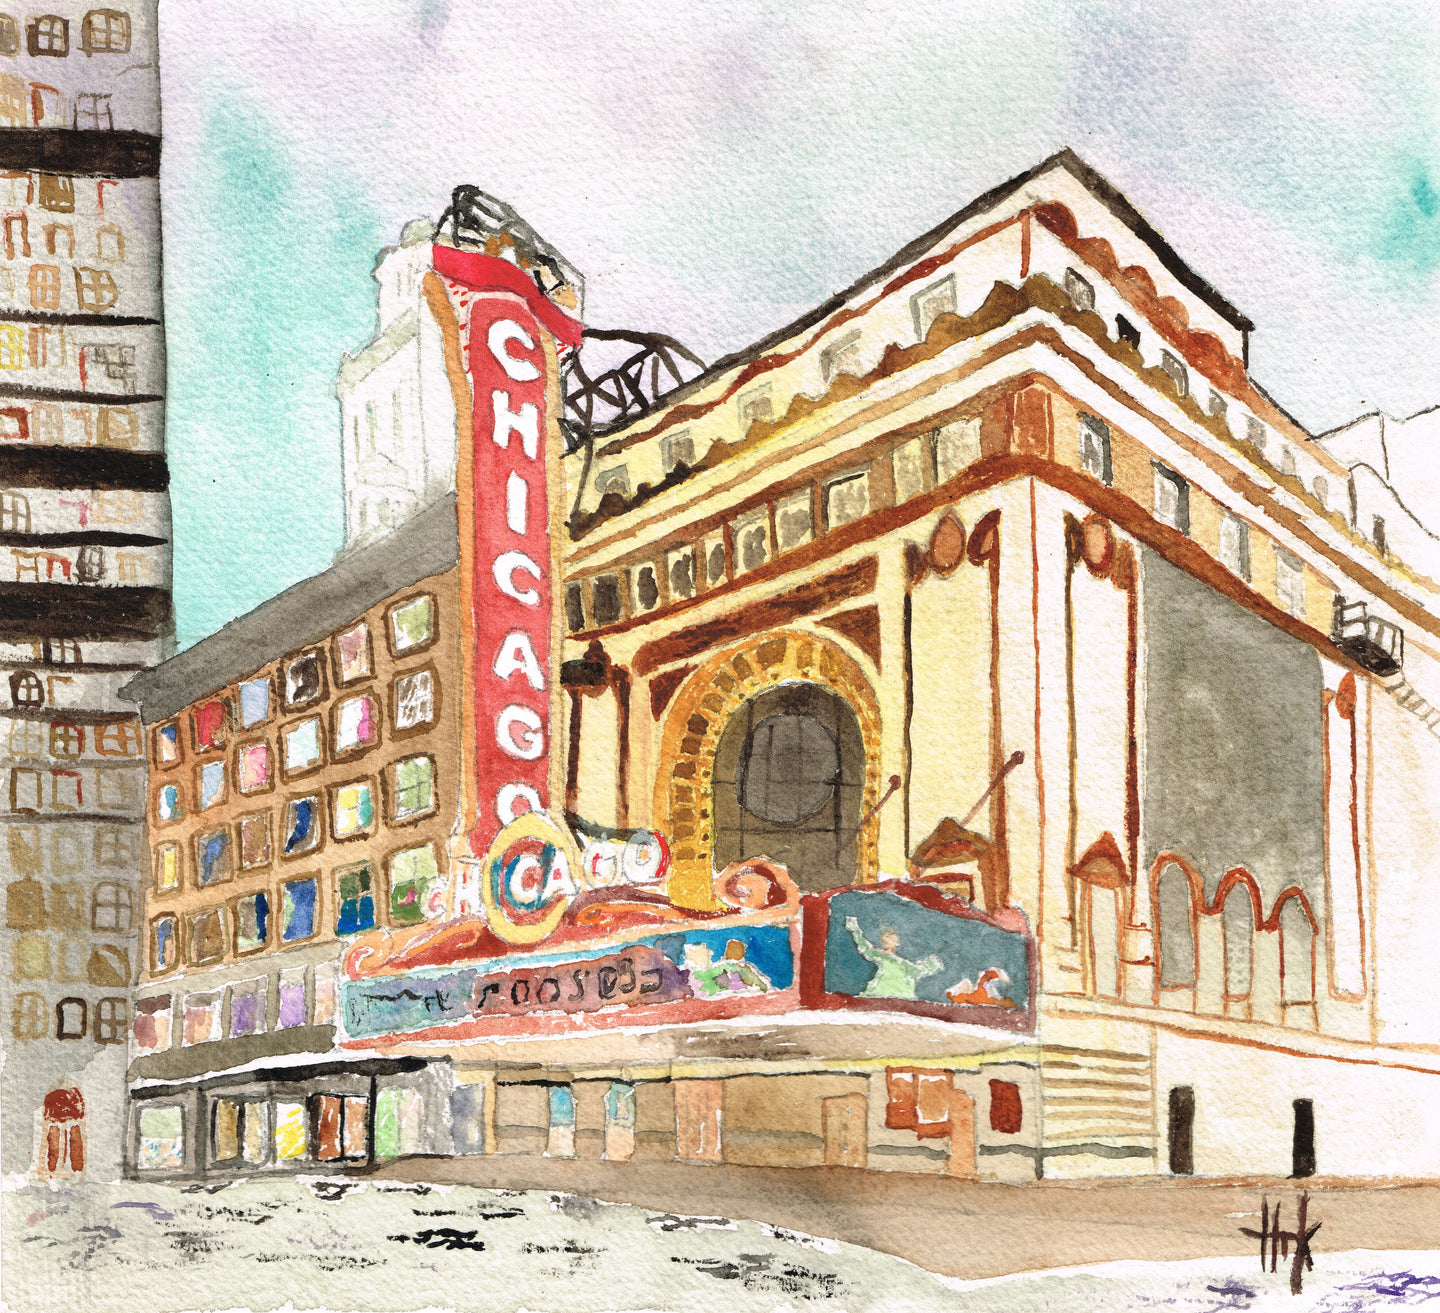 CHICAGO THEATRE - PRINT